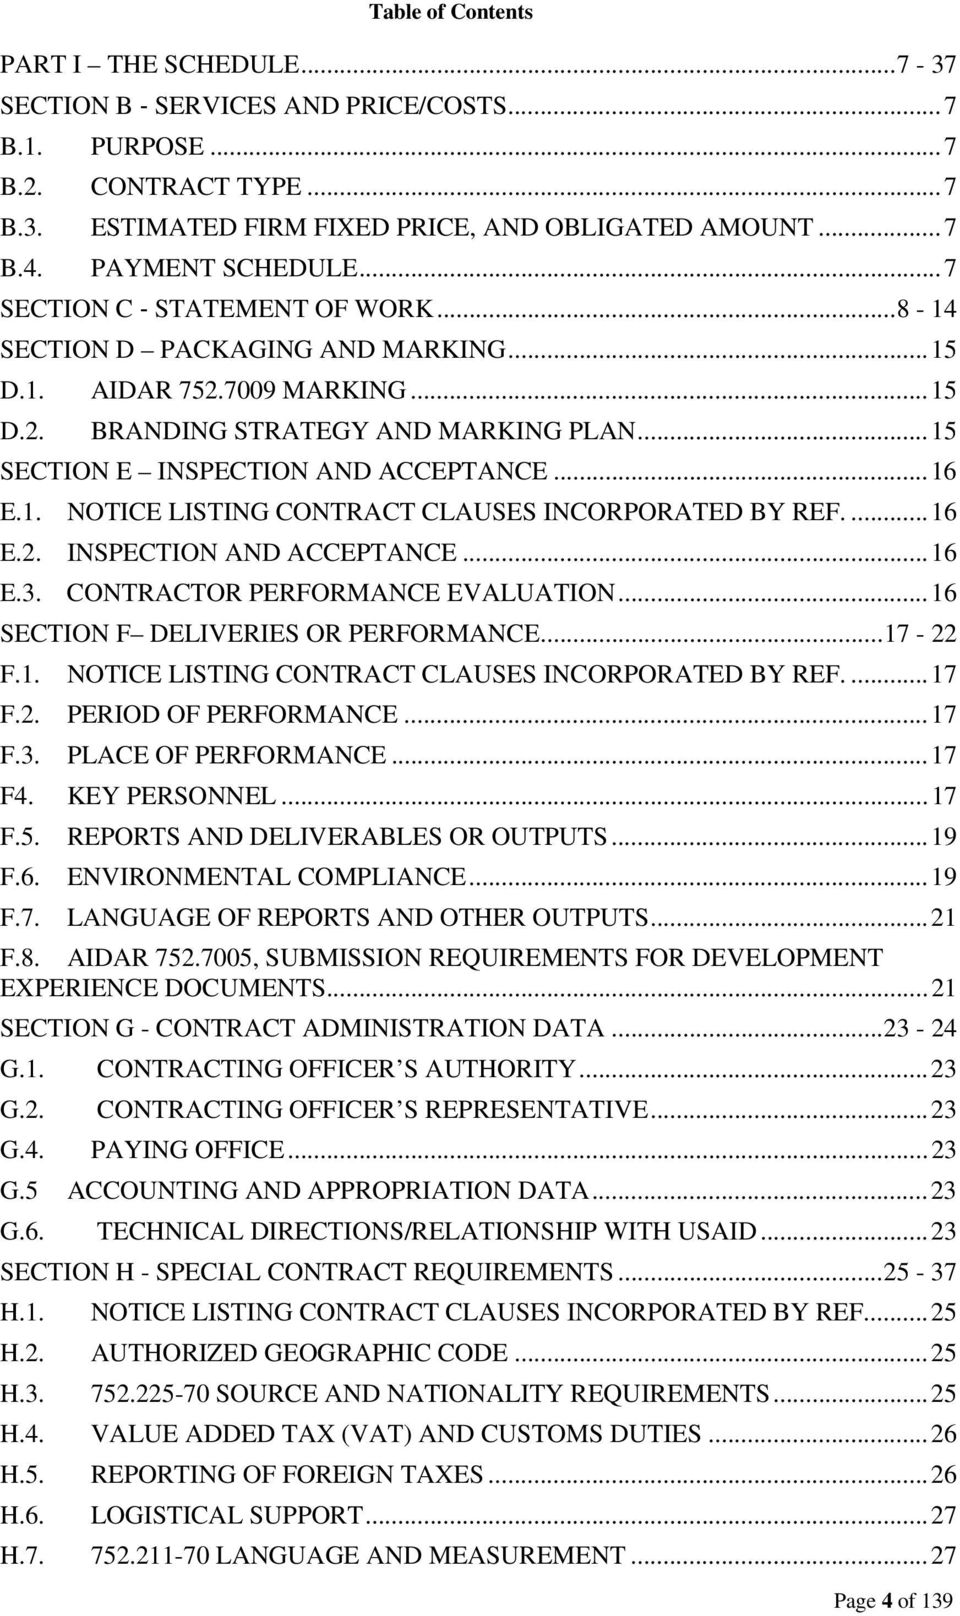 .. 15 SECTION E INSPECTION AND ACCEPTANCE... 16 E.1. NOTICE LISTING CONTRACT CLAUSES INCORPORATED BY REF.... 16 E.2. INSPECTION AND ACCEPTANCE... 16 E.3. CONTRACTOR PERFORMANCE EVALUATION.